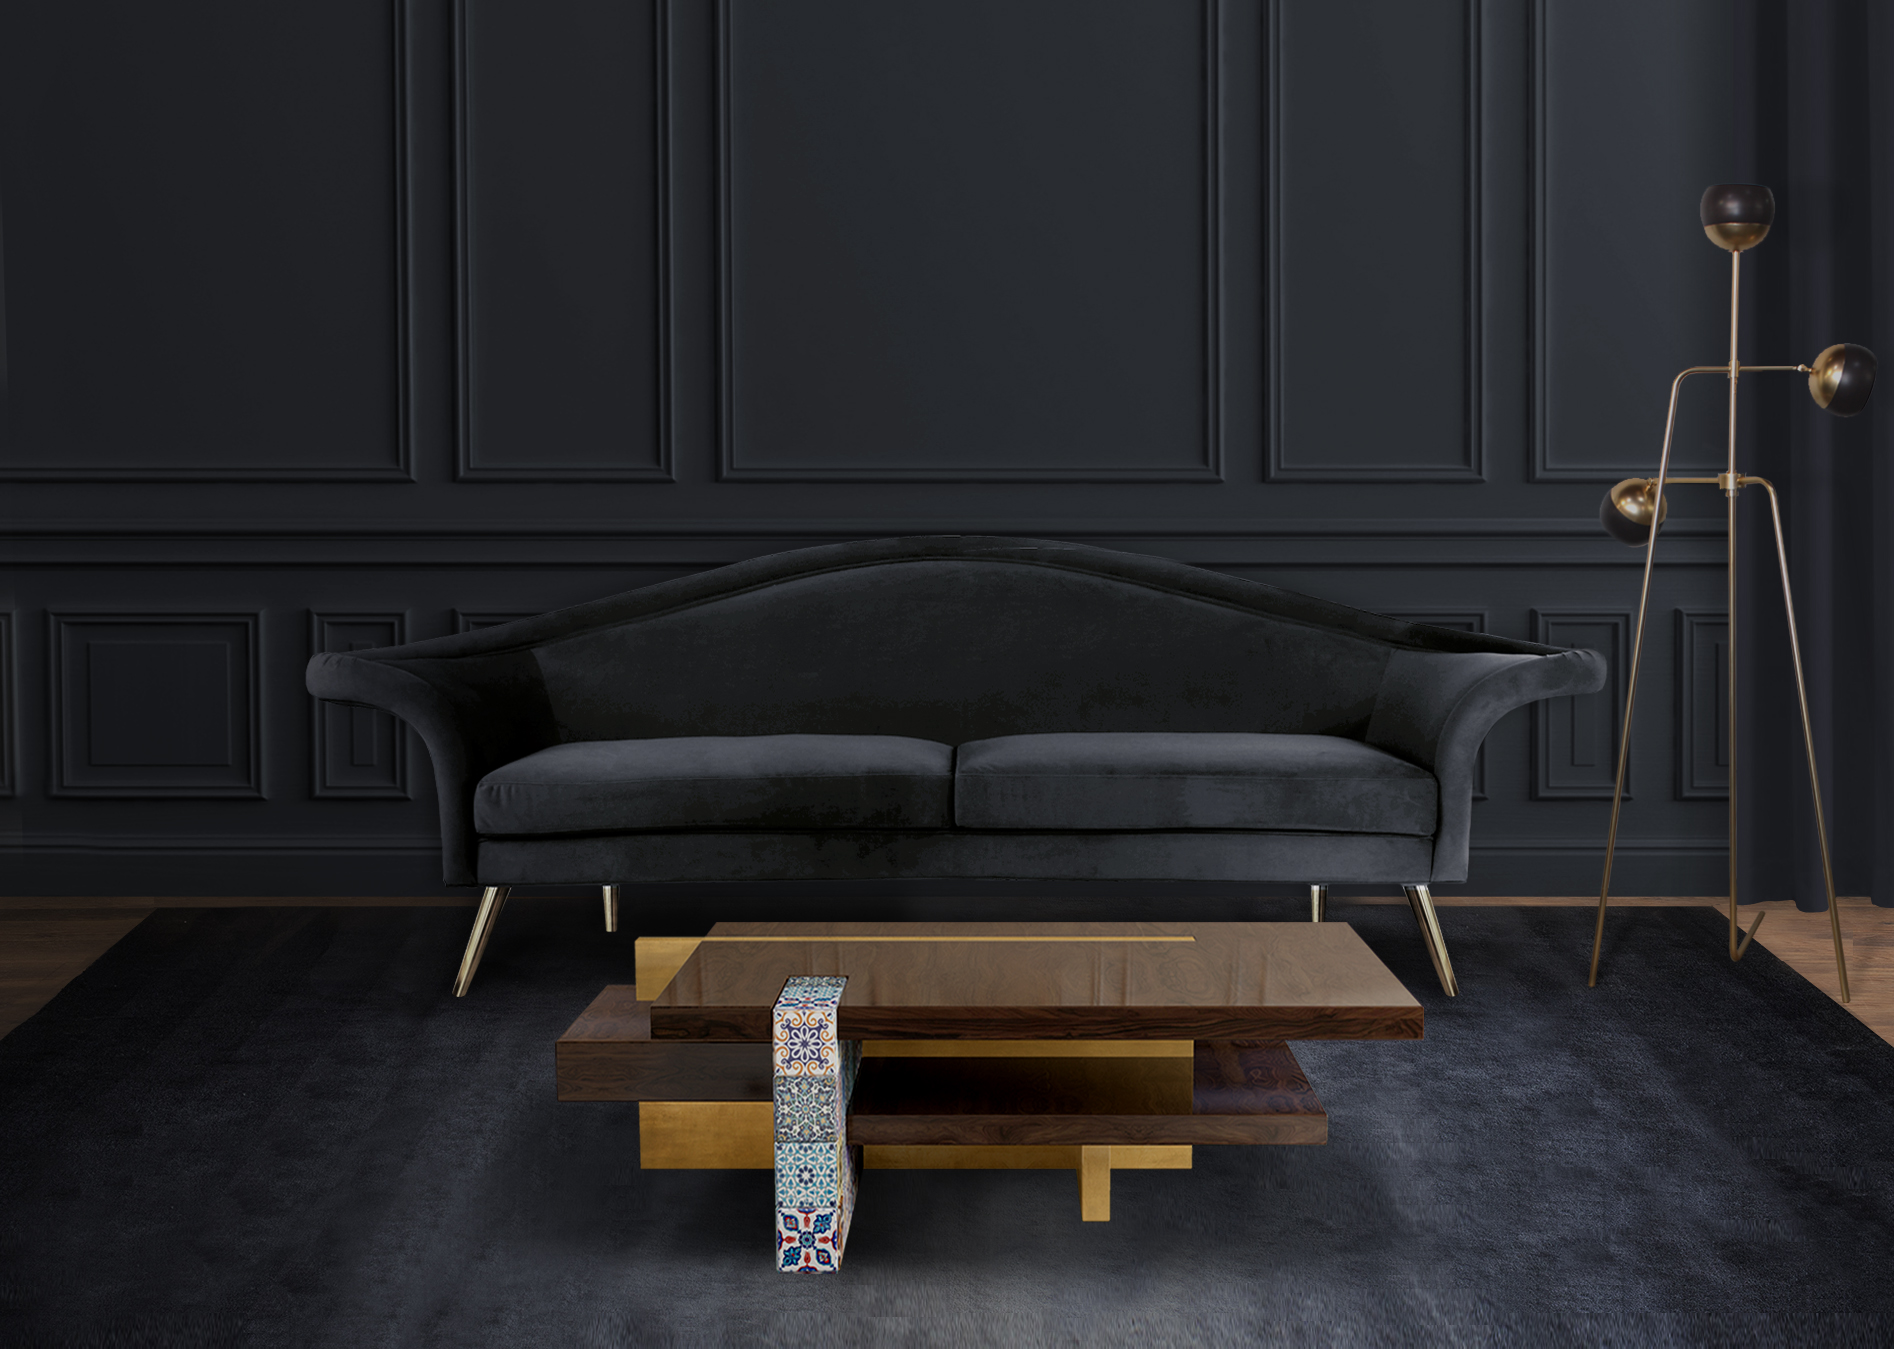 Replacement Of Furniture Using Mid Century Modern Sofa Or A New Gadget Will Bring Luxury Interior Design Character To Your Living Room